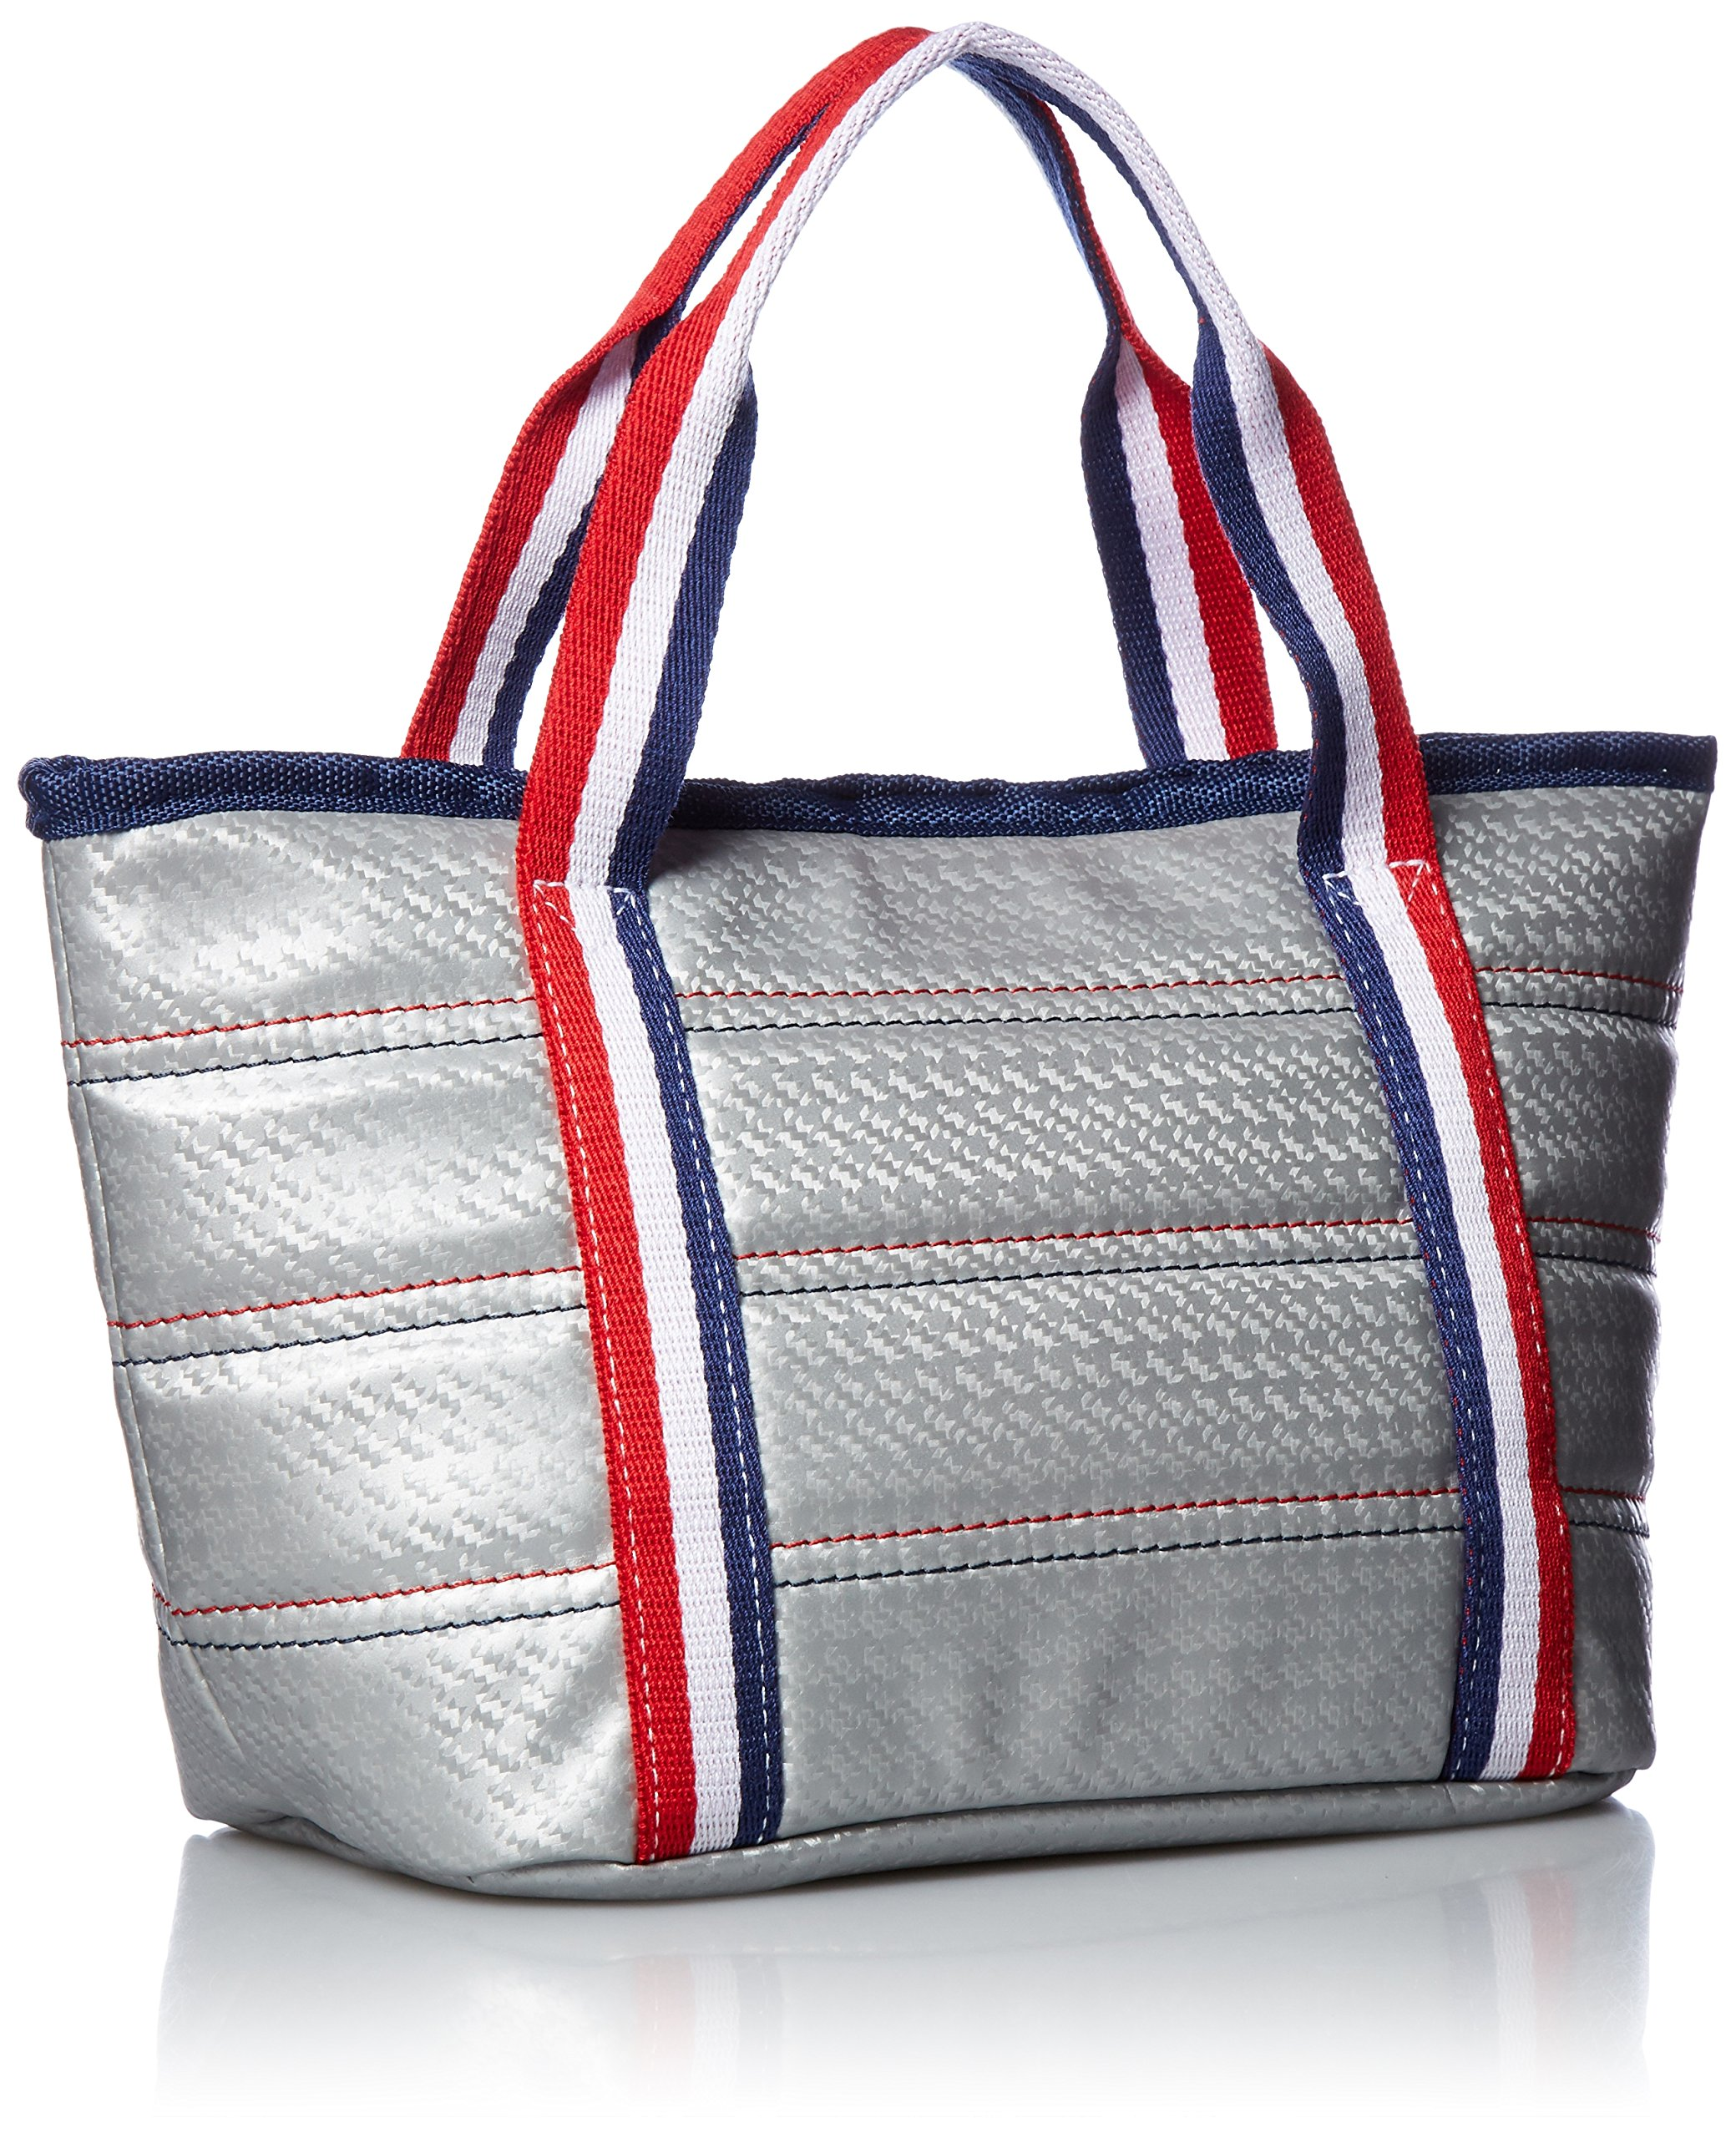 [Adidas Golf] Round Tote Bag L23 × W18 × H13 cm AWT 28 A 42076 Silver by adidas (Image #2)